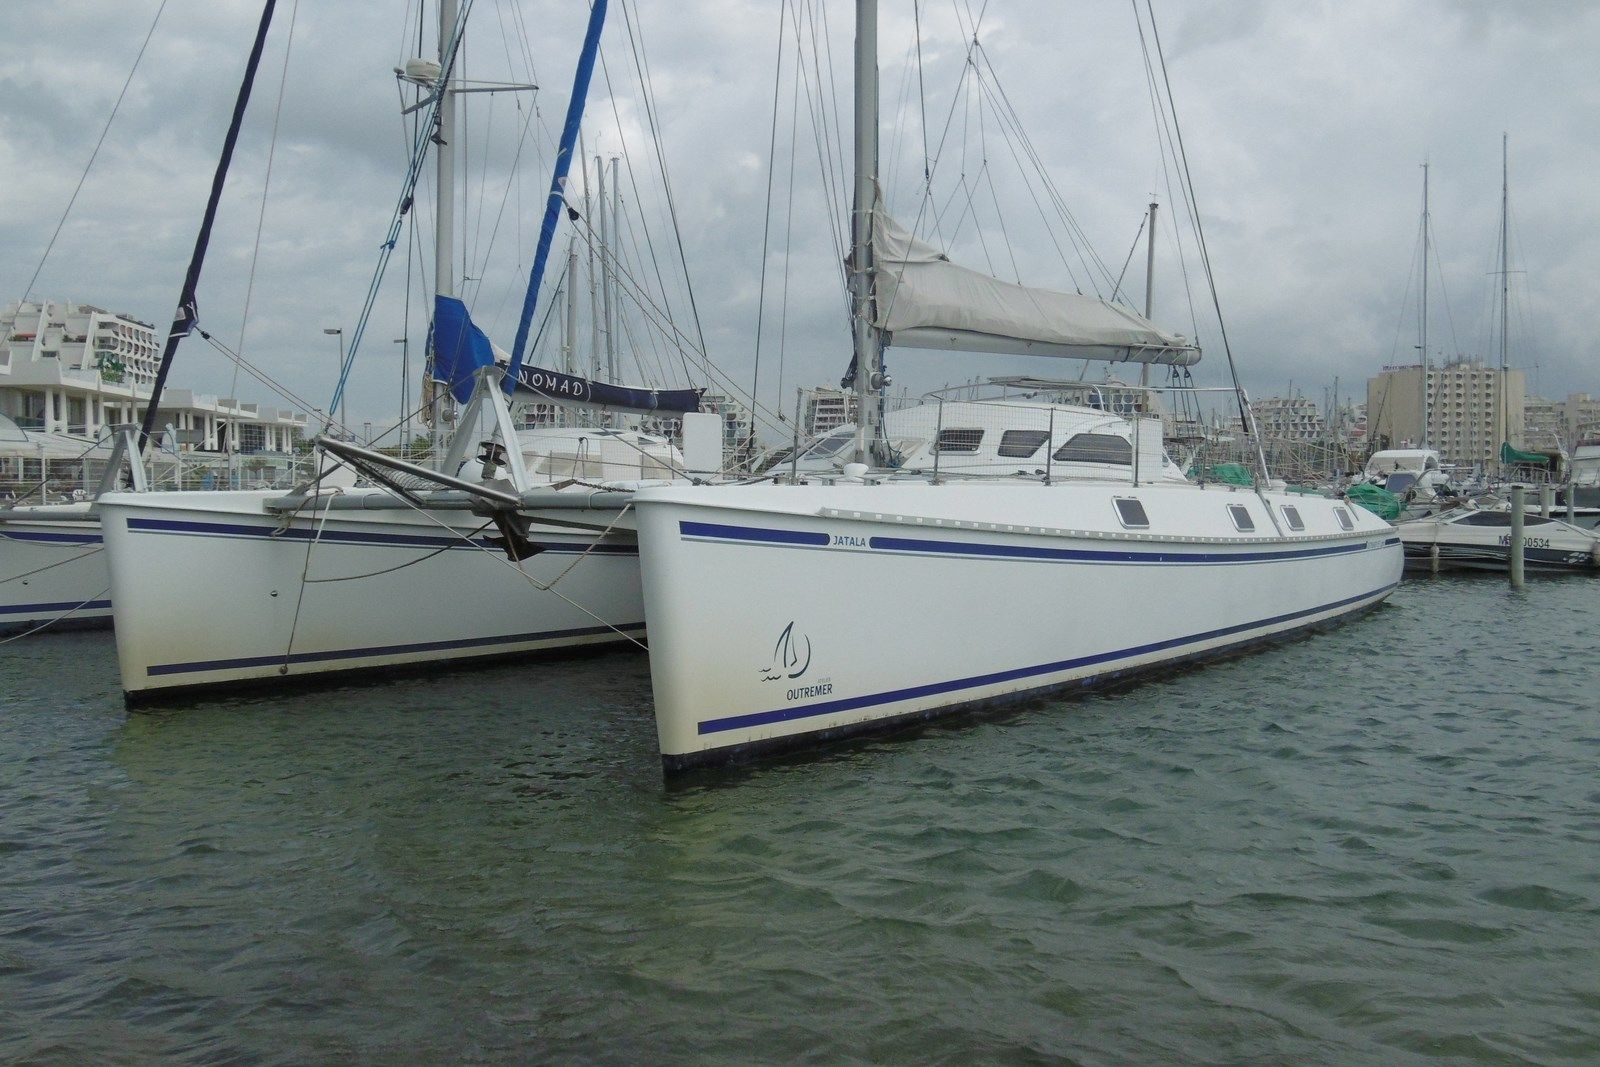 For Sale OUTREMER 55 LIGHT 2002 € 375,000.00 VAT Paid